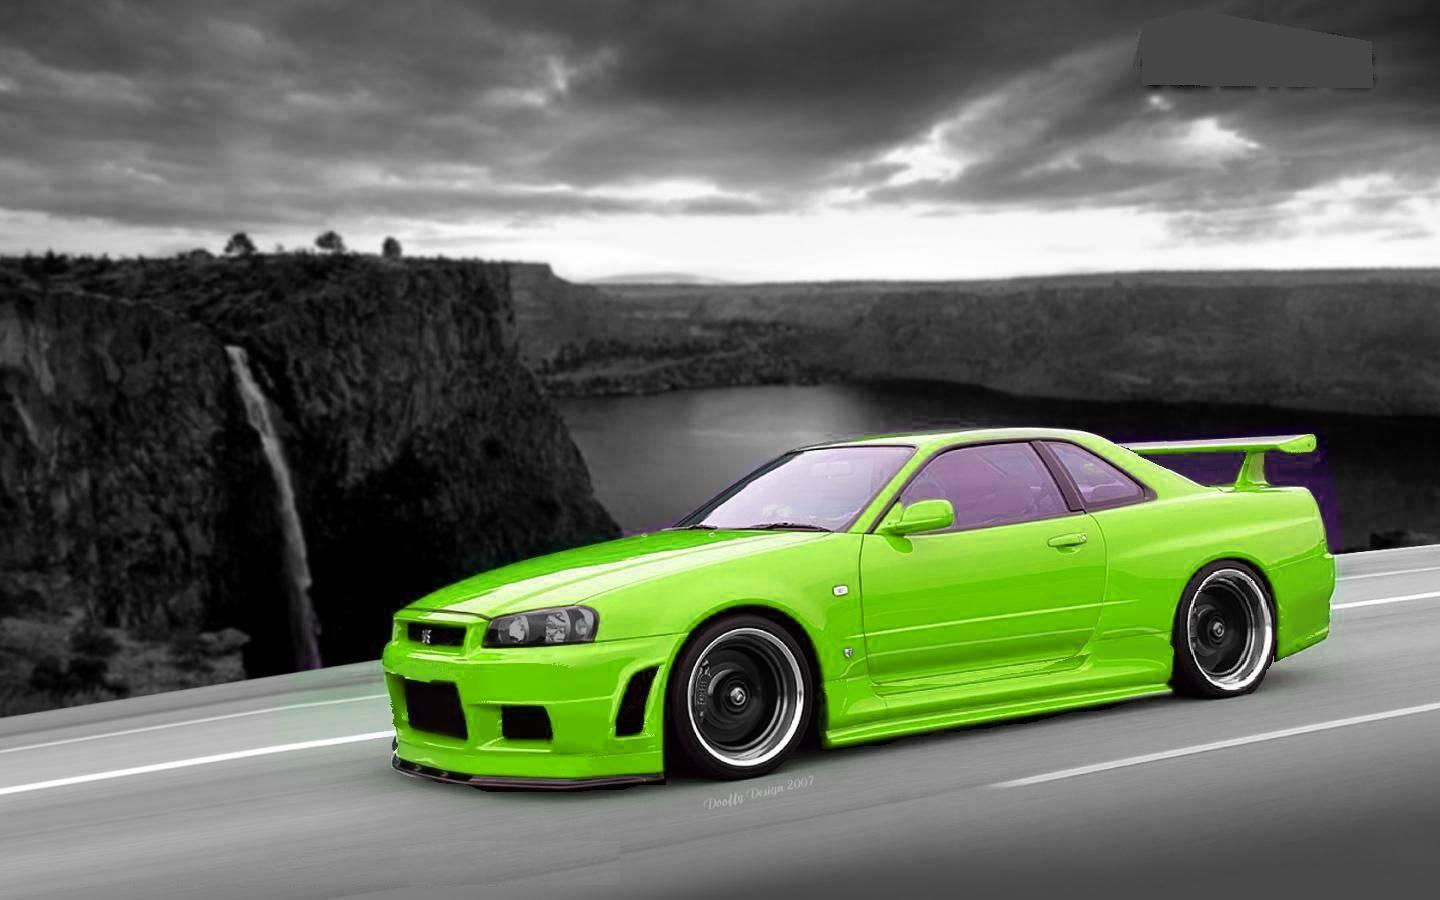 nissan skyline r34 wallpapers wallpaper cave. Black Bedroom Furniture Sets. Home Design Ideas